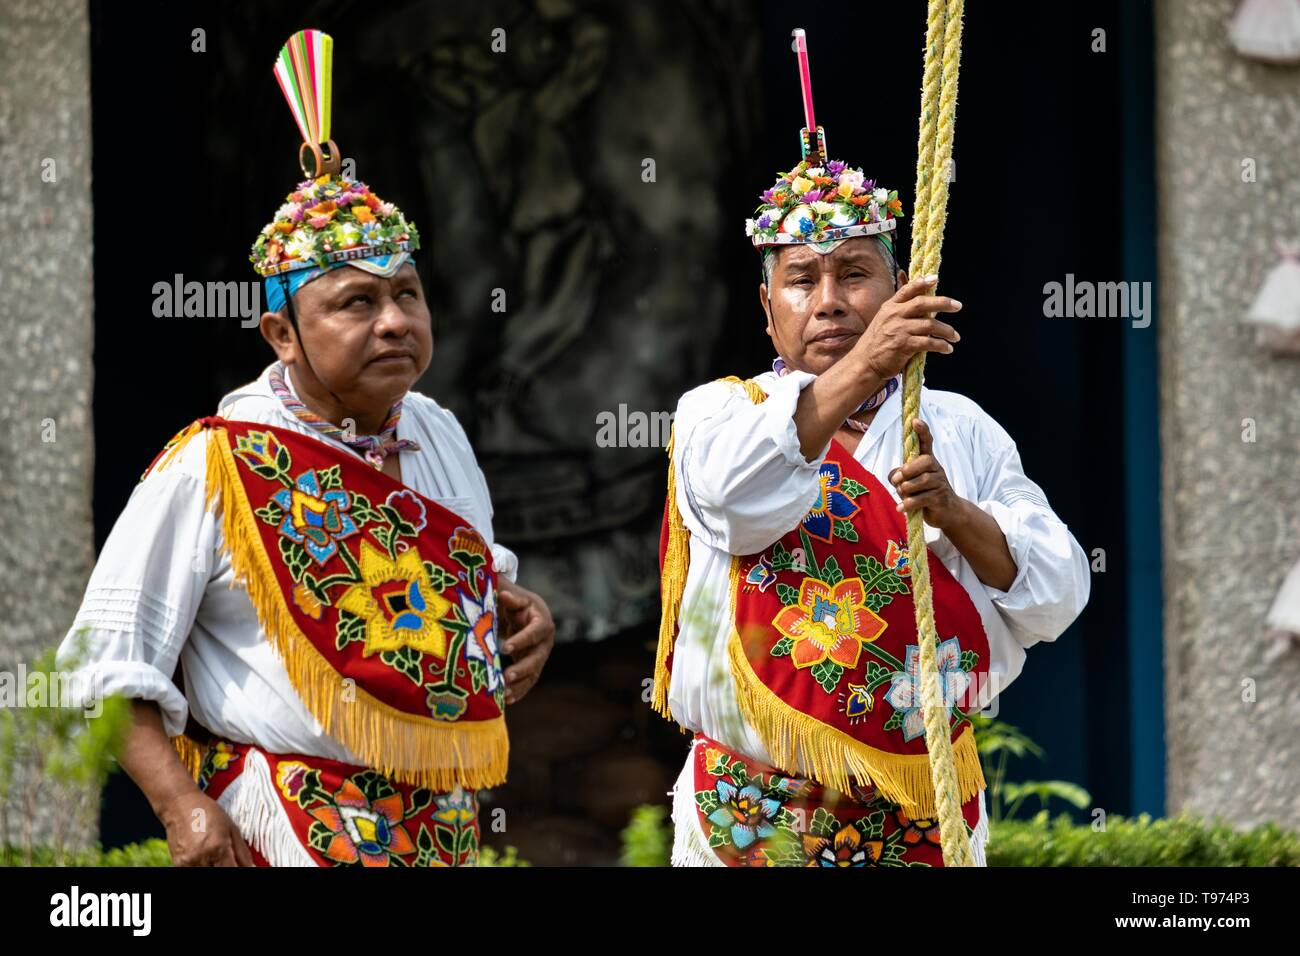 A Voladores prepare to climb the thirty-meter pole to perform the sacred ceremonial dance in the Parque Takilhsukut at the pre-Columbian archeological complex of El Tajin in Tajin, Veracruz, Mexico. The Danza de los Voladores is a indigenous Totonac ceremony involving five participants who climb a thirty-meter pole. Four of these tie ropes around their waists and wind the other end around the top of the pole in order to descend to the ground. The fifth participant stays at the top of the pole, playing a flute and a small drum. The ceremony has been inscribed as a Masterpiece of the Oral and In - Stock Image